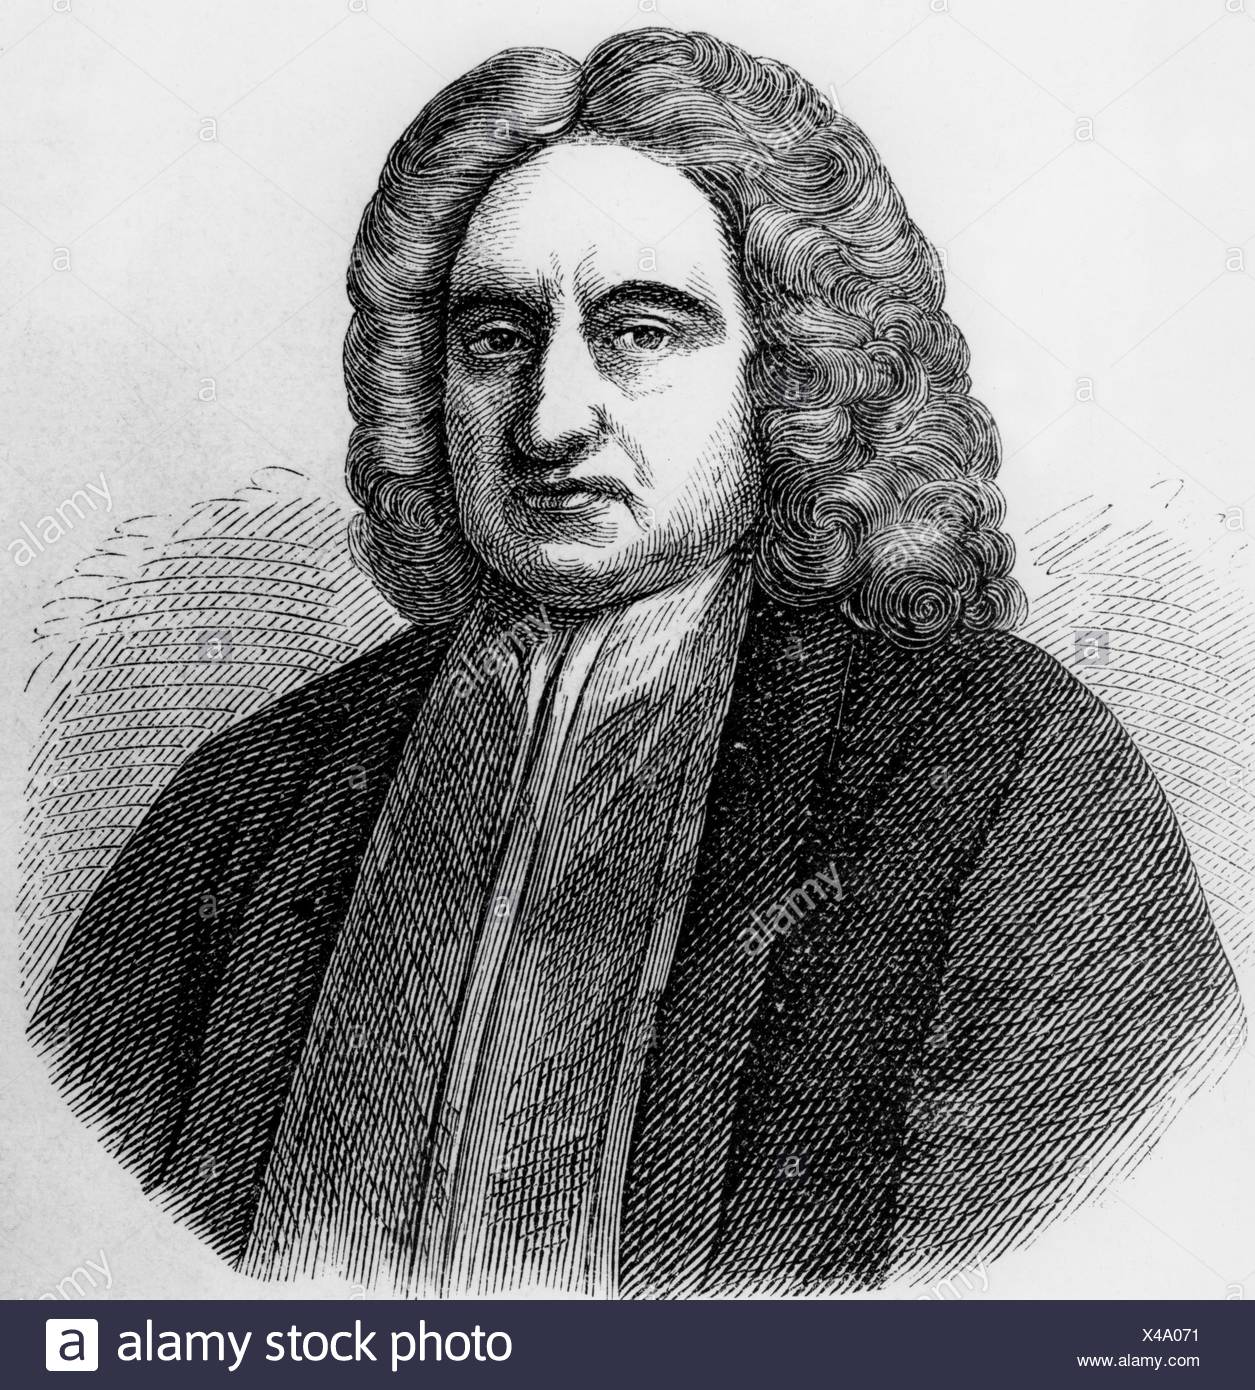 edmund halley halley comet astronomy Edmund halley was an accomplished astronomer his work led to the discovery  and confirmation of the orbit of p/1 halley, the comet that bears.